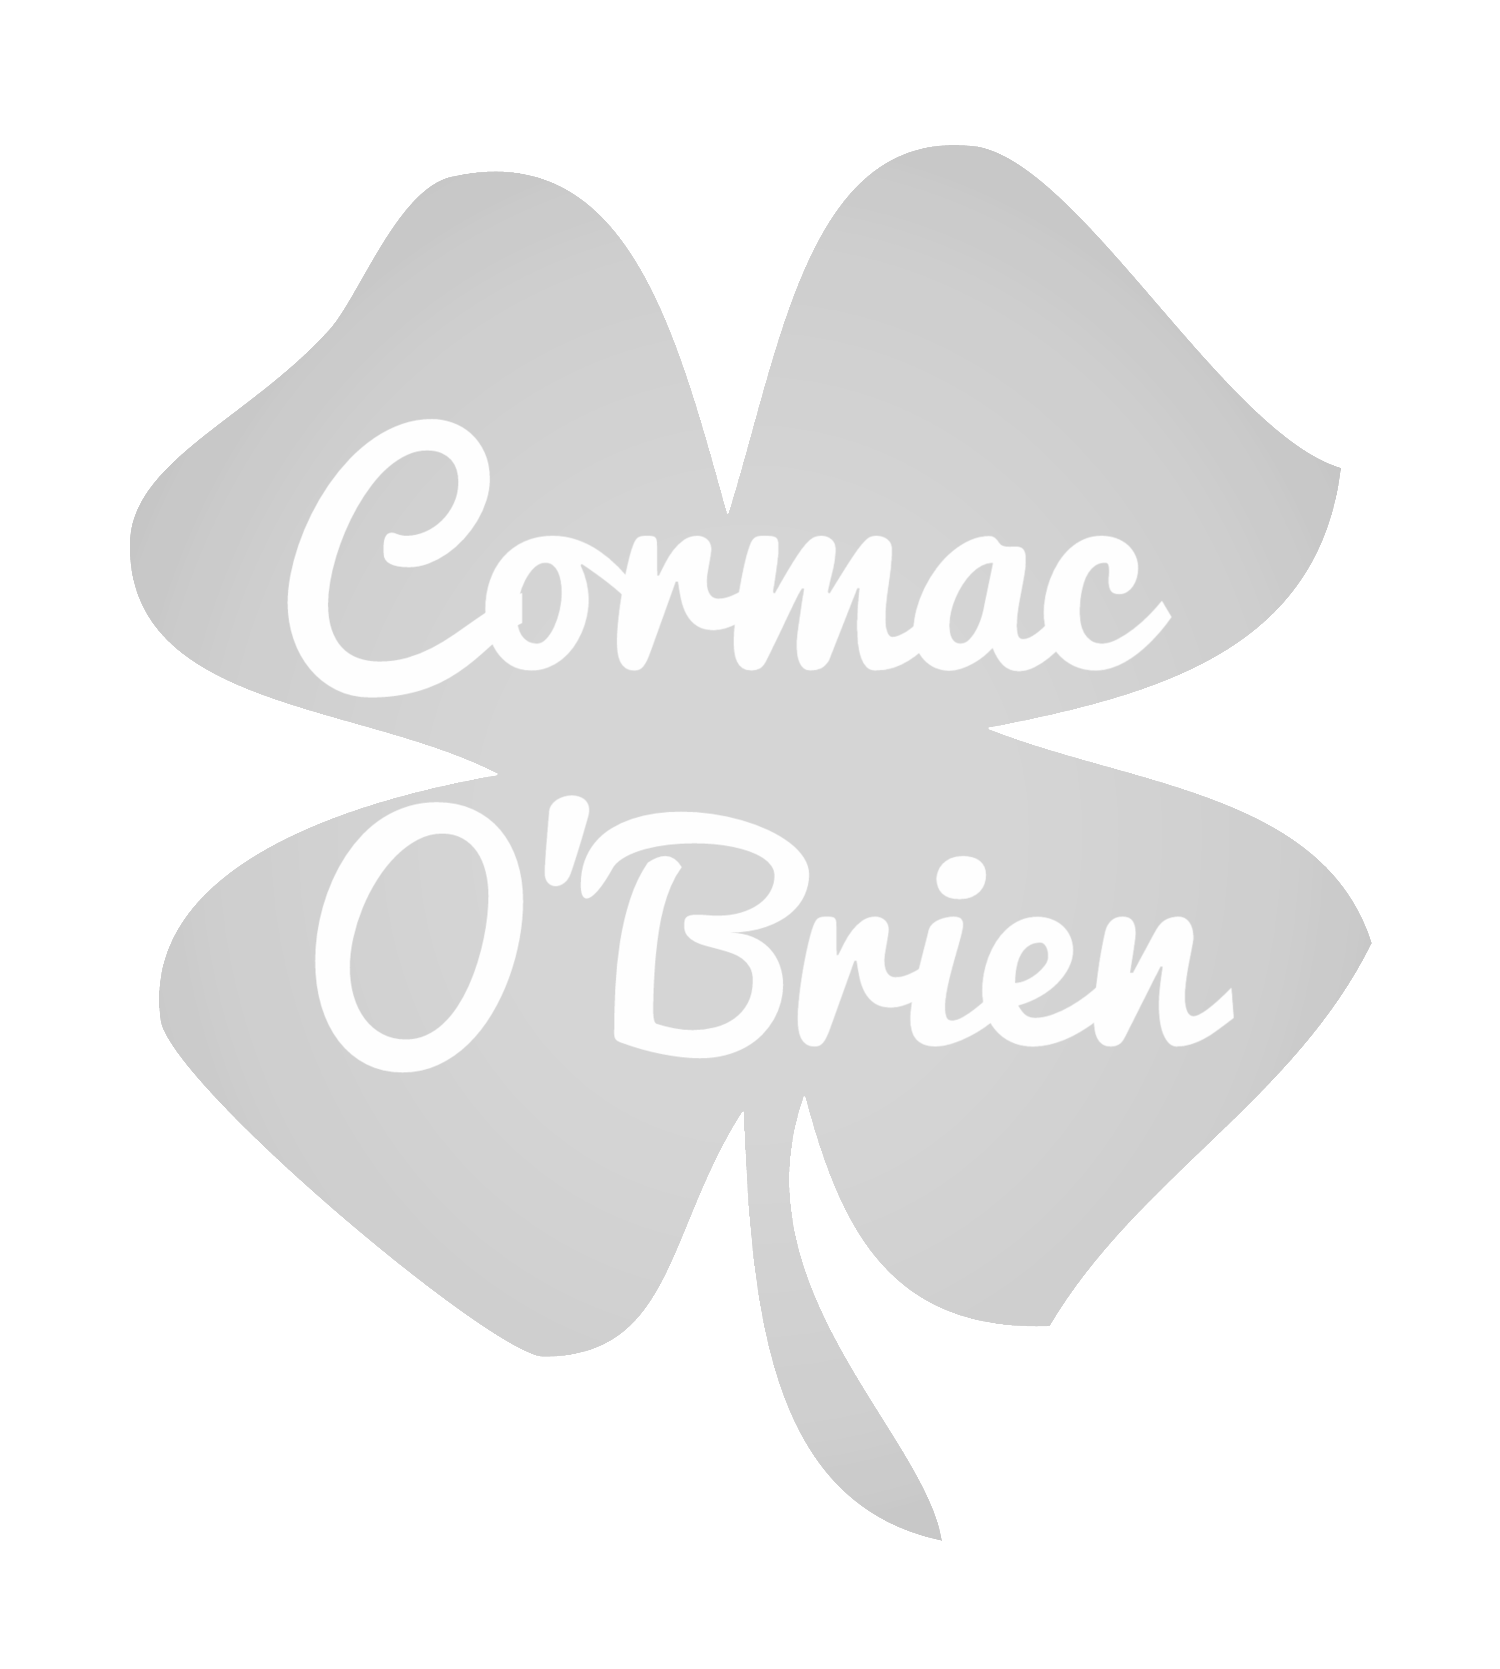 Cormac O'Brien